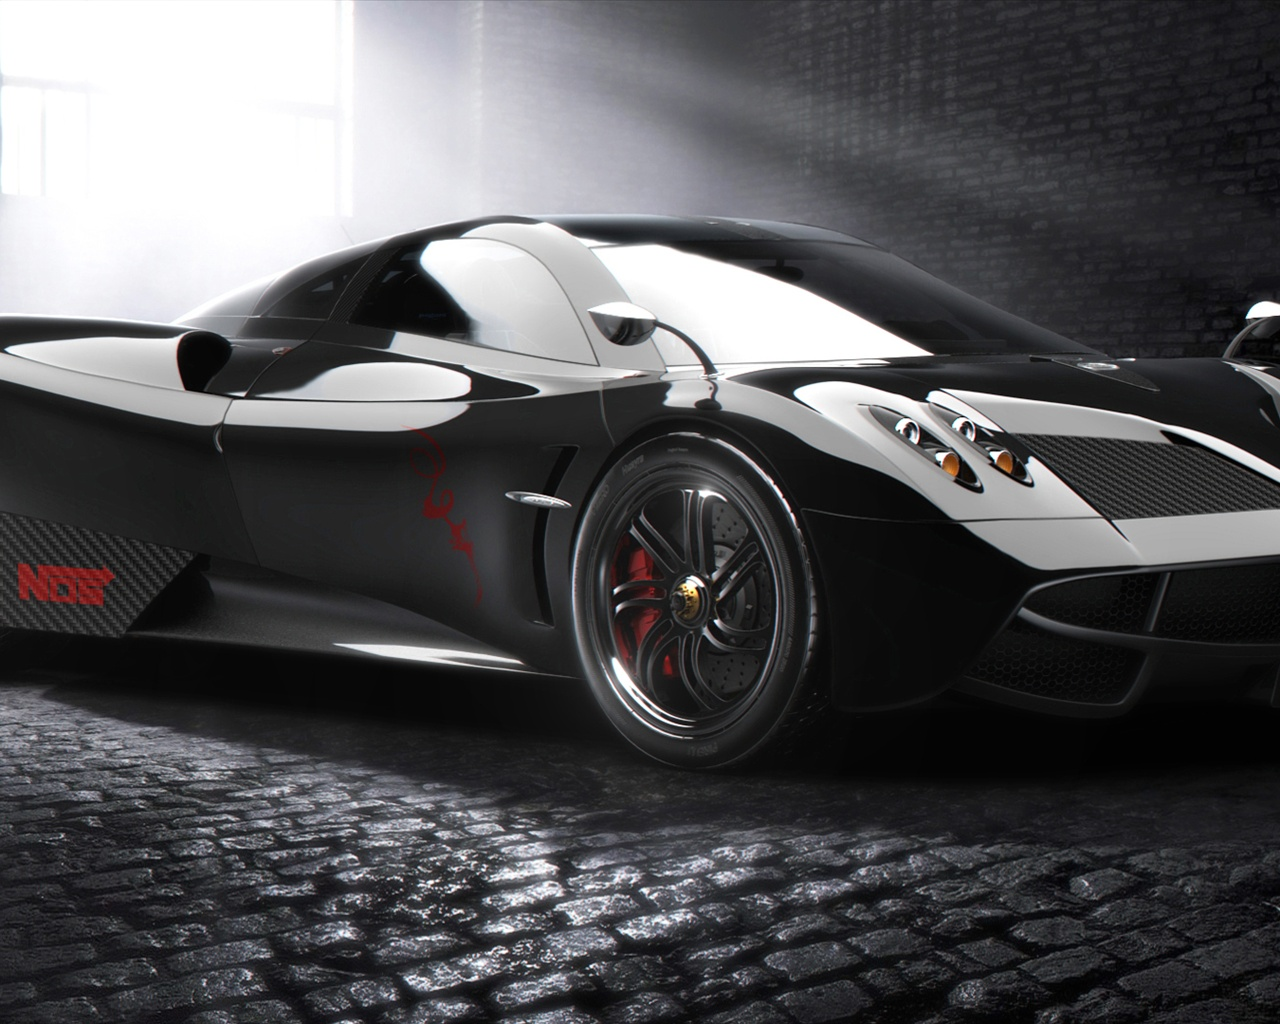 Huayra supercar black Wallpaper 1280x1024 resolution wallpaper 1280x1024